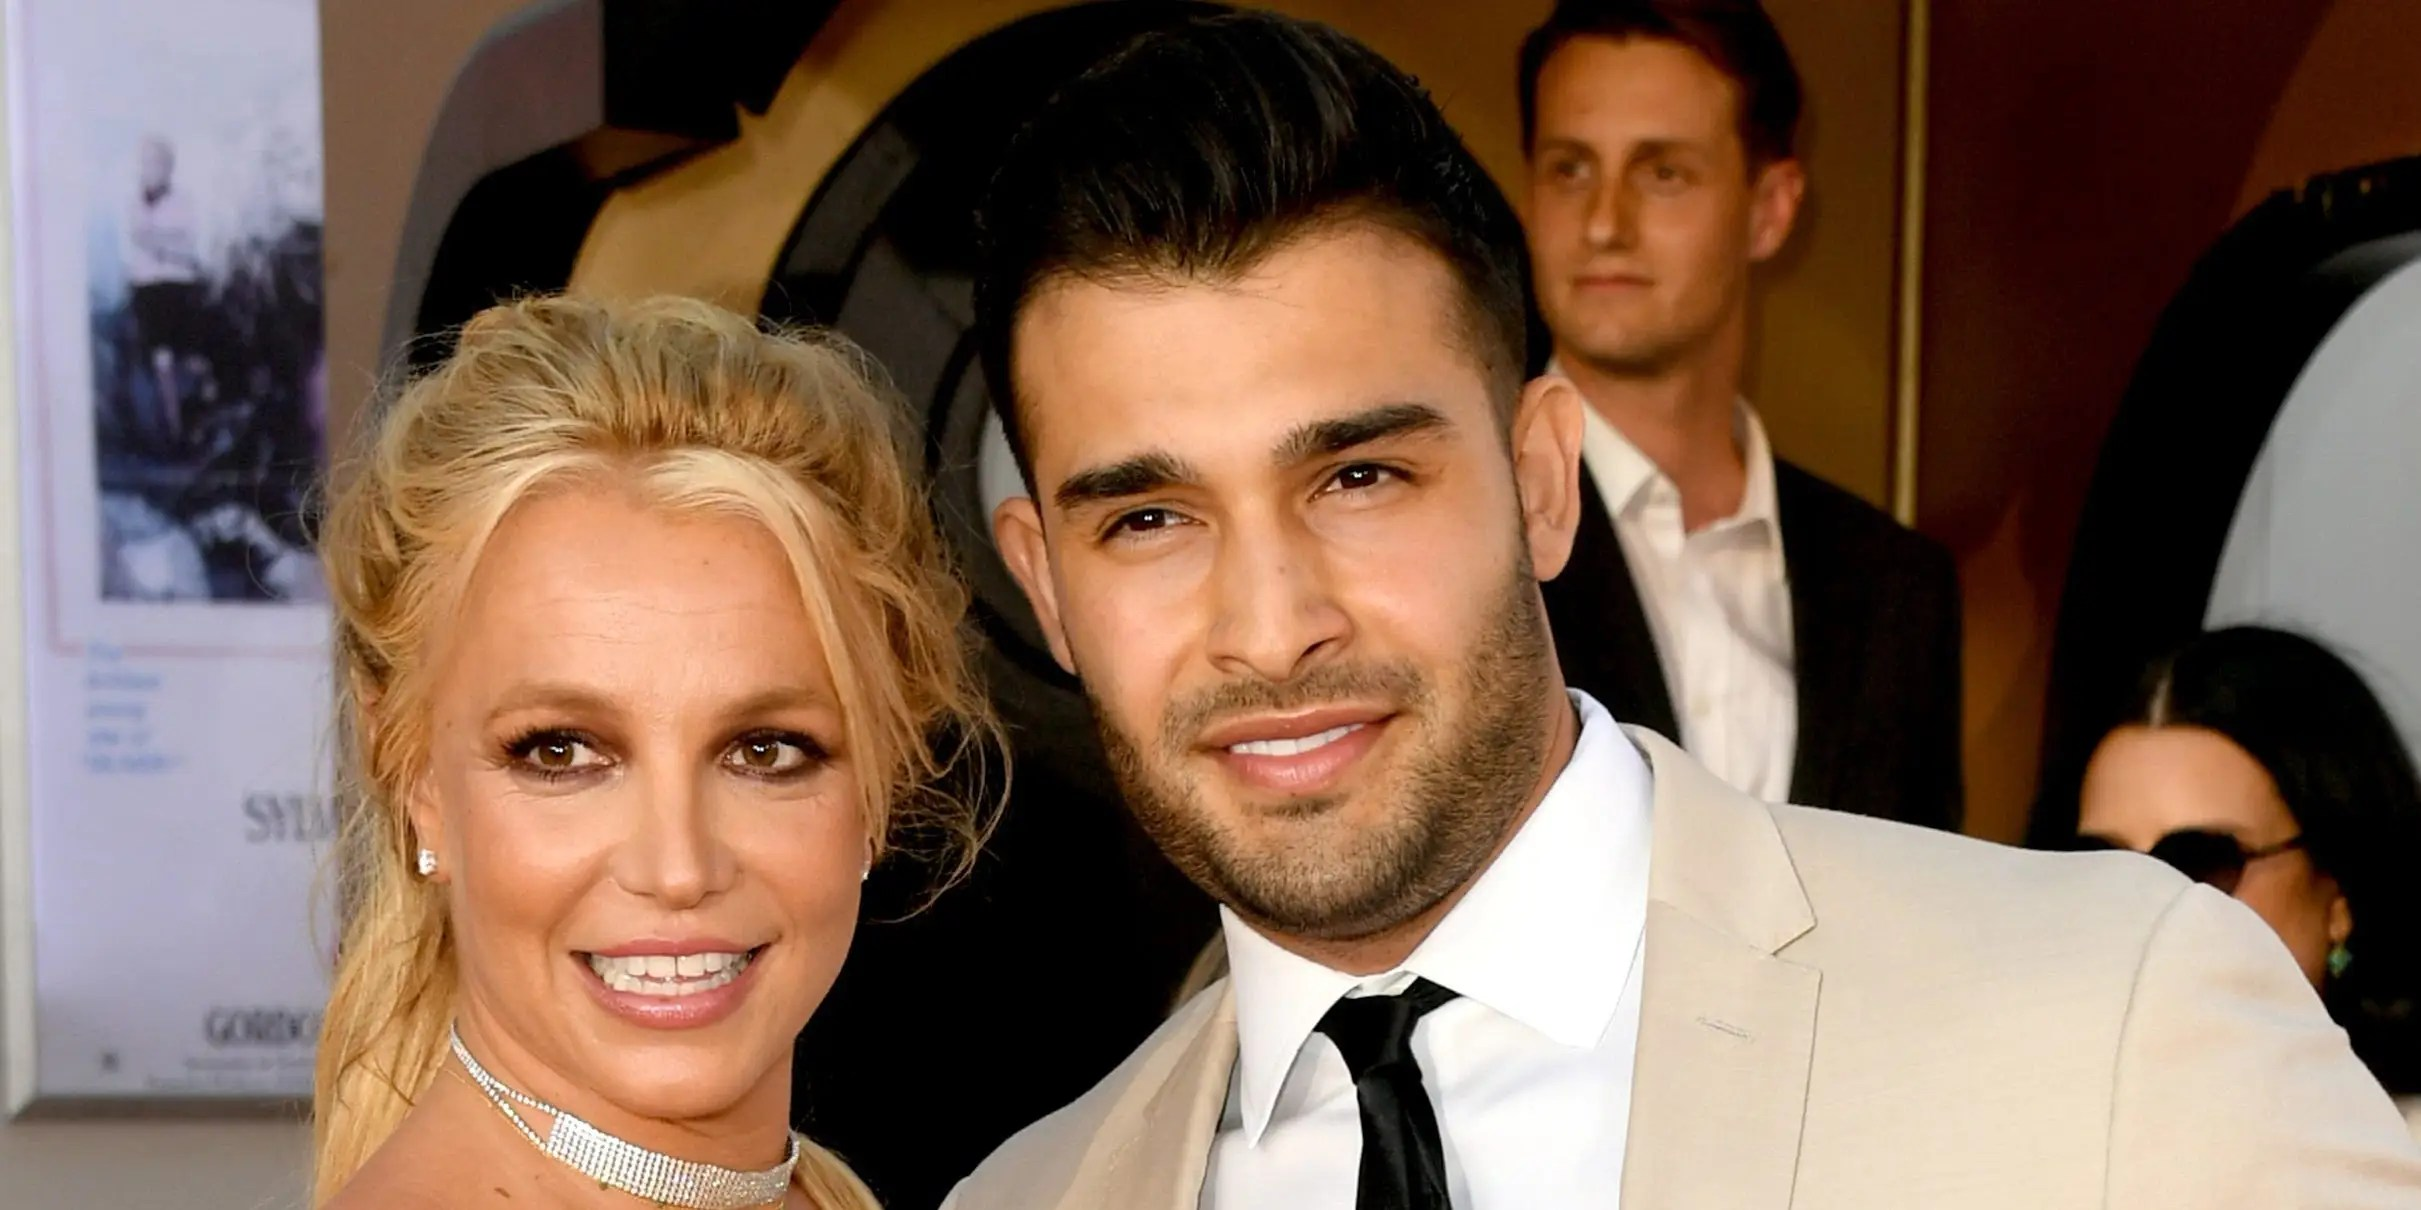 He is from iran and is making his move in modeling industry of united states. Britney Spears Boyfriend Sam Asghari Said He Wants To Be A Young Dad